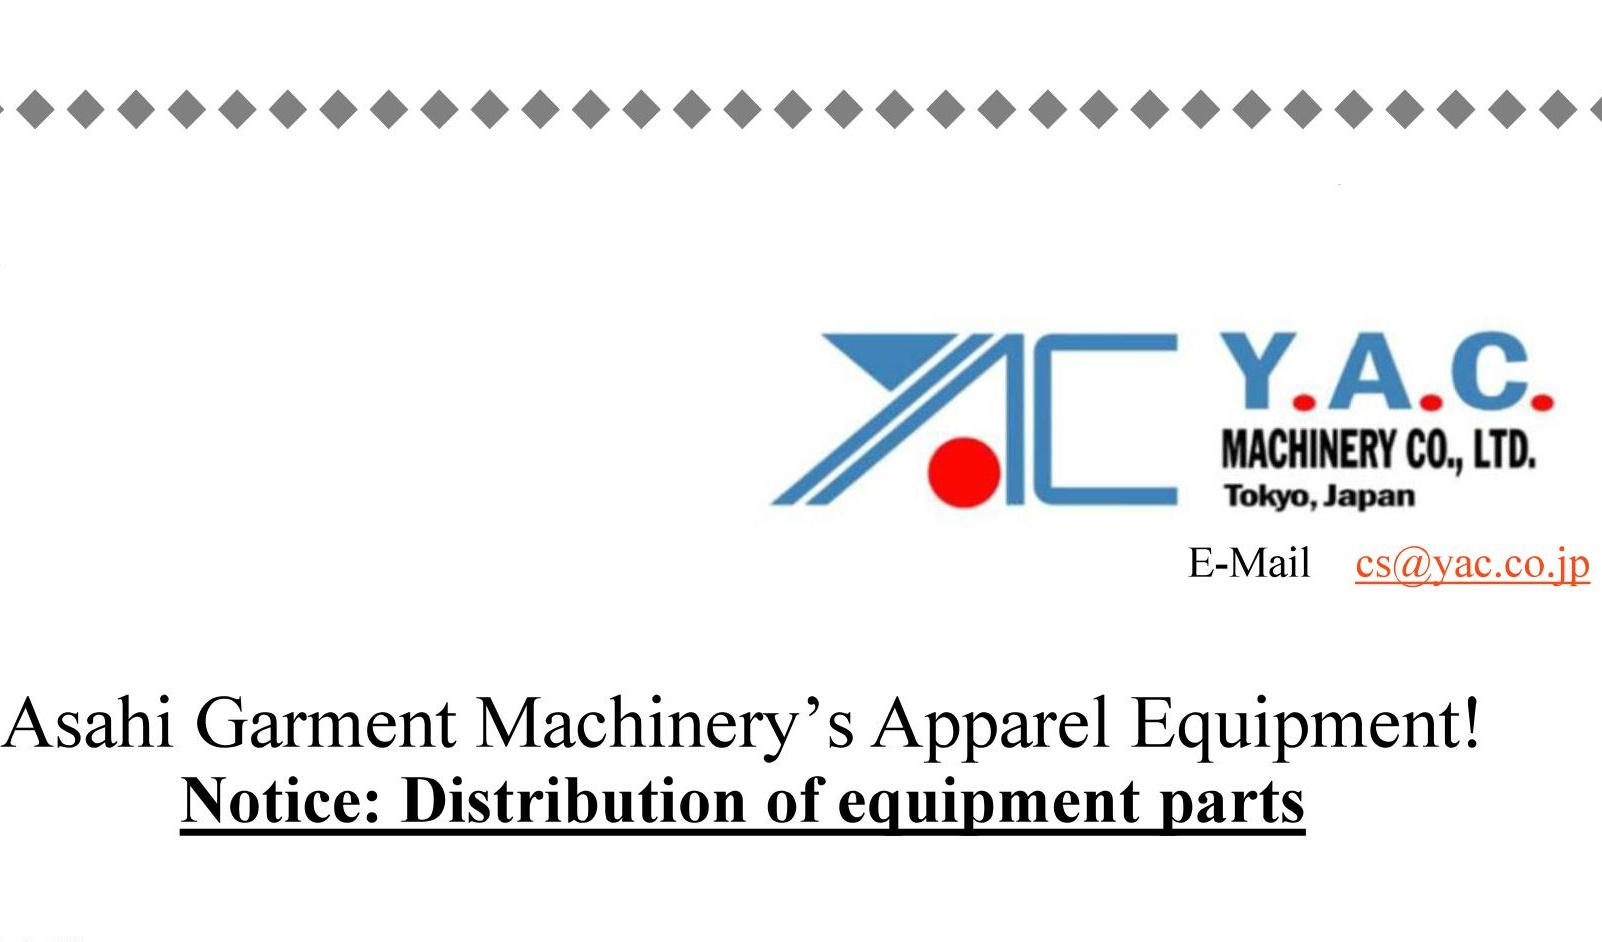 Notice: Distribution of equipment parts